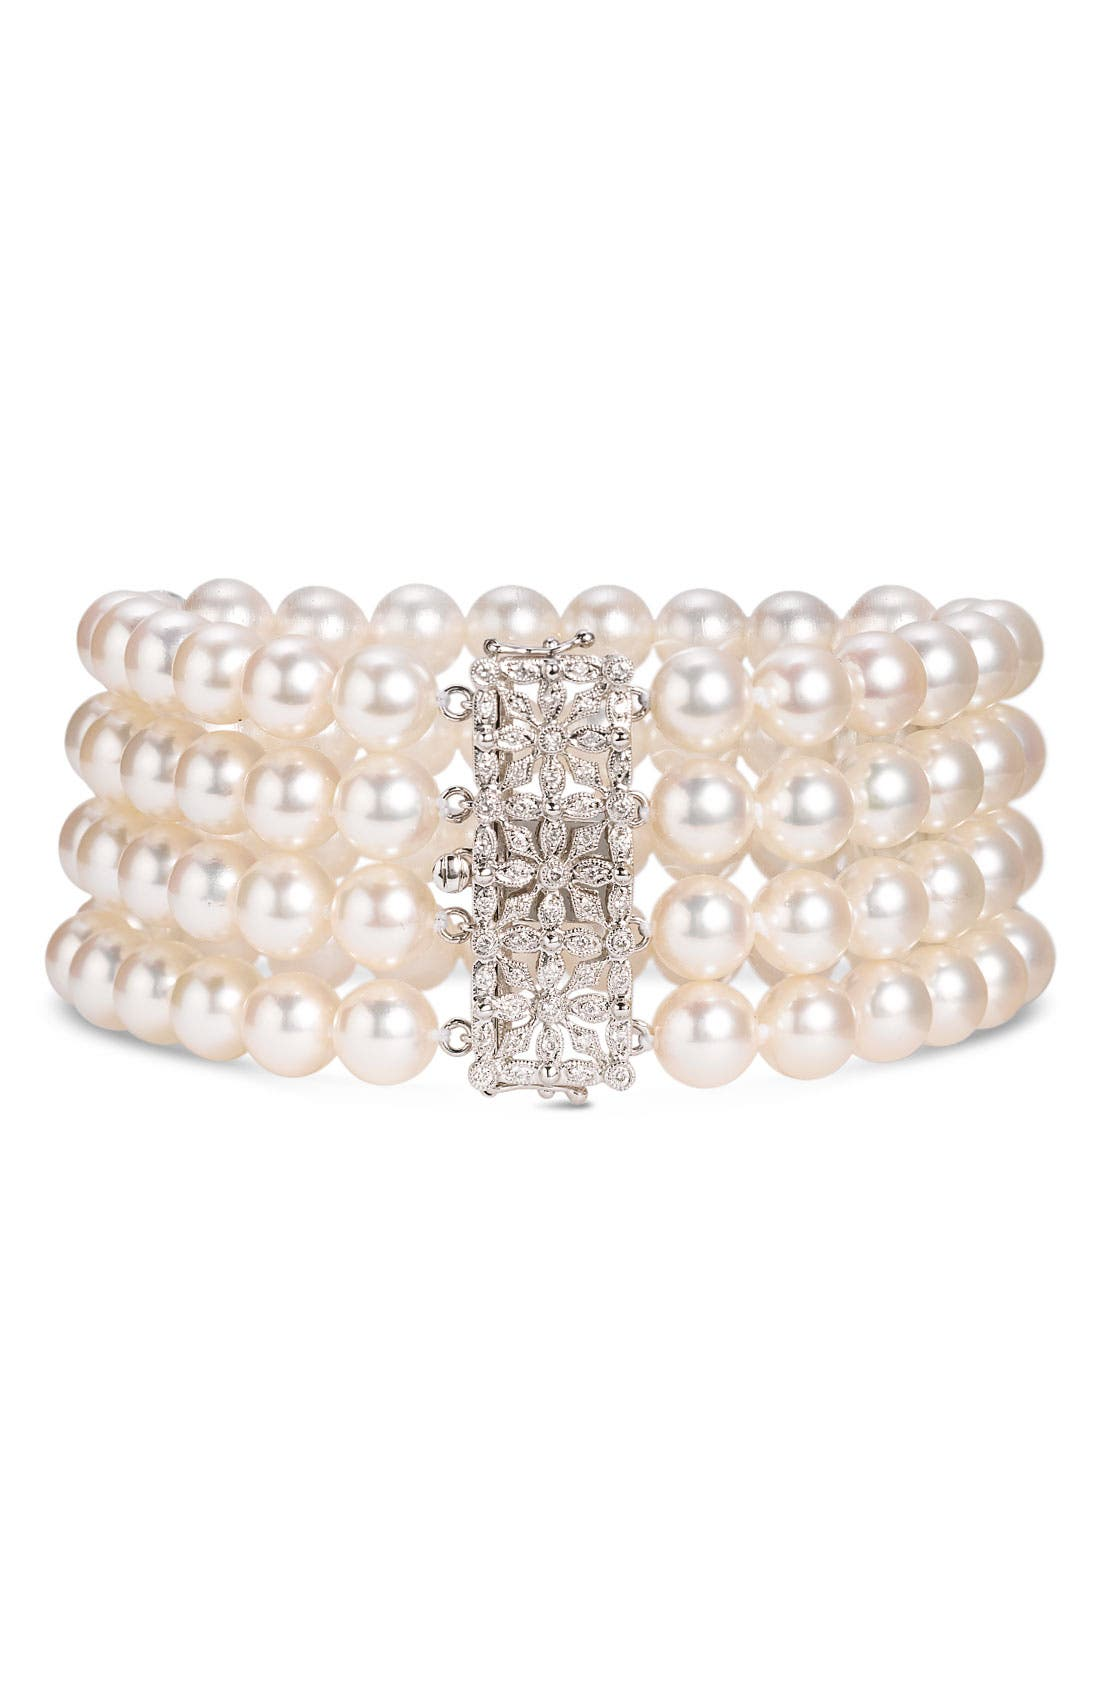 Alternate Image 1 Selected - Mastoloni 4-Strand Pearl & Diamond Clasp Bracelet